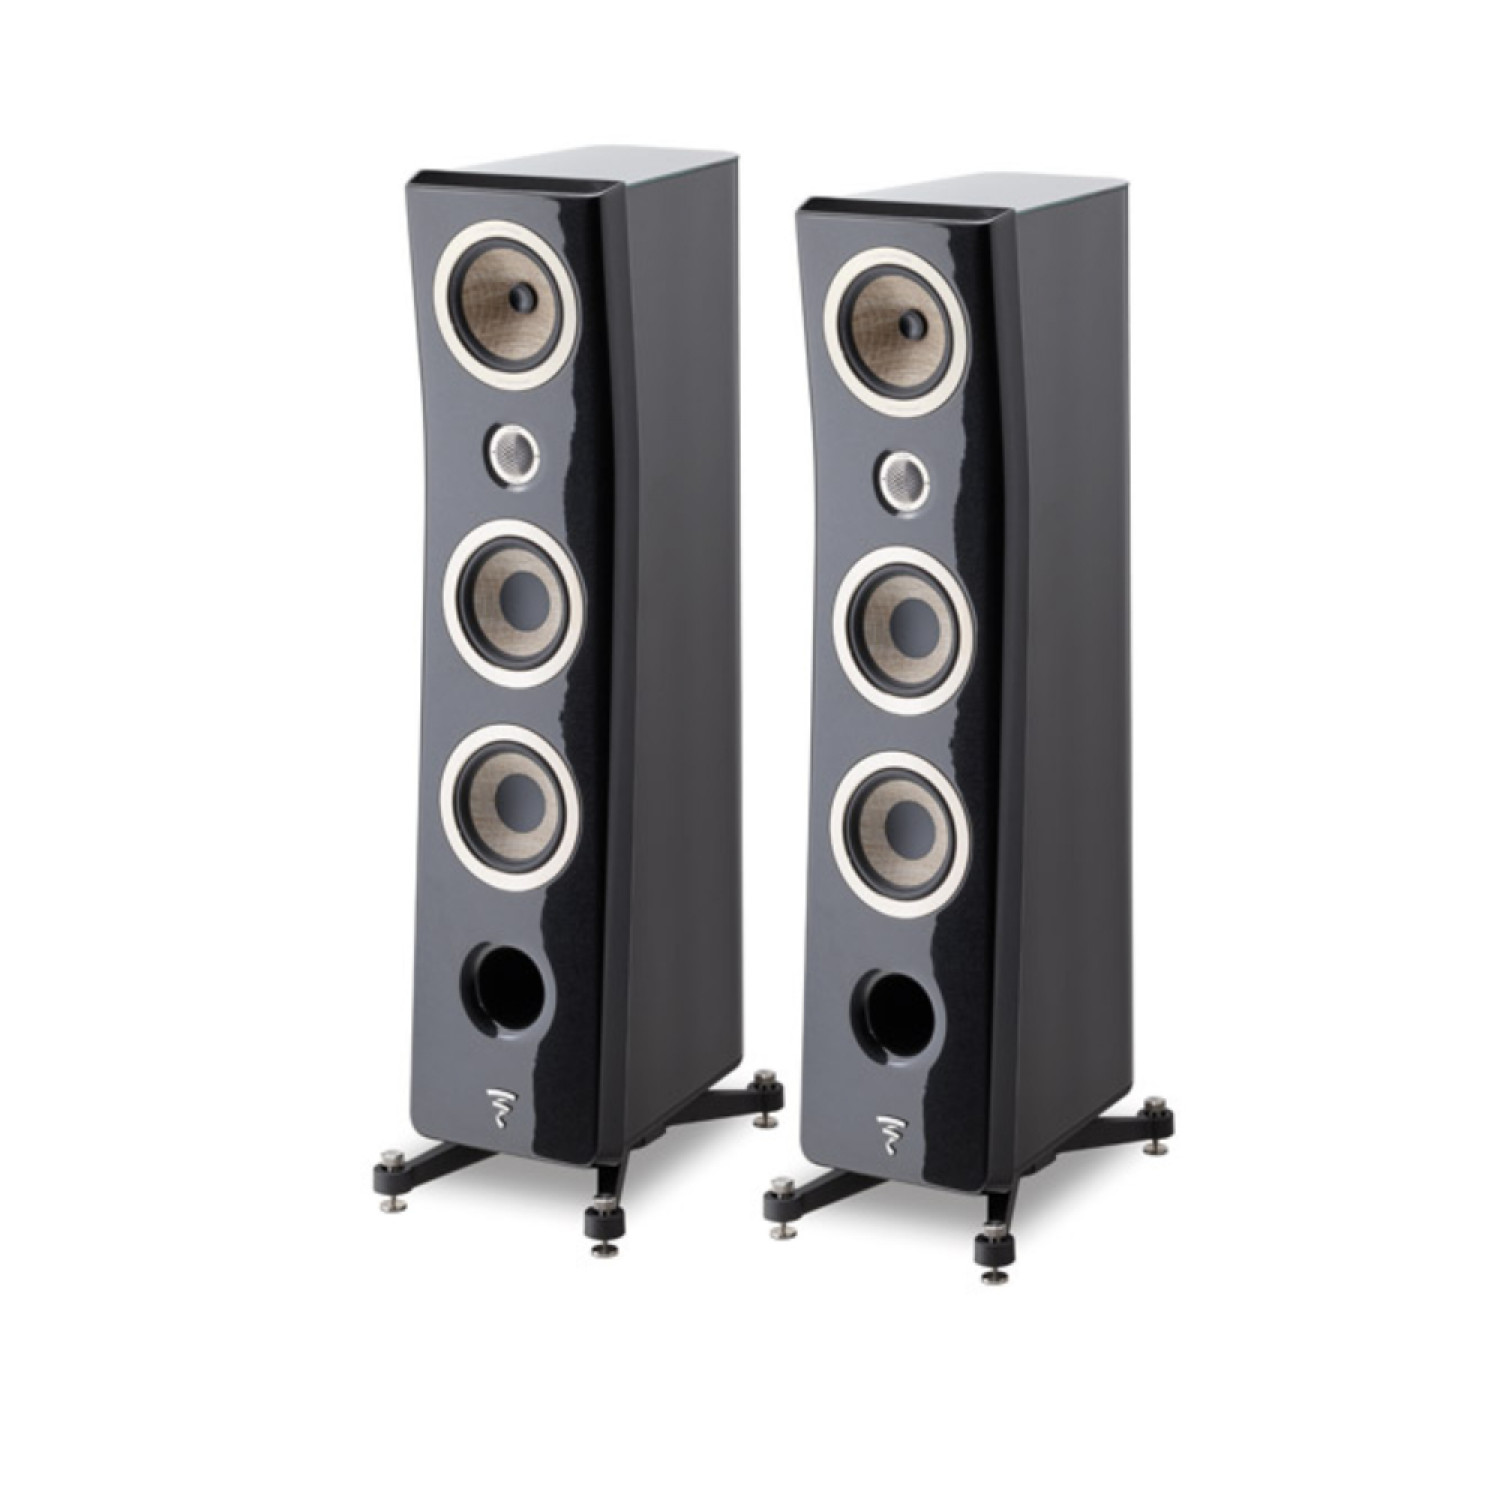 Focal Kanta N°2 3-Way Floorstanding Speakers